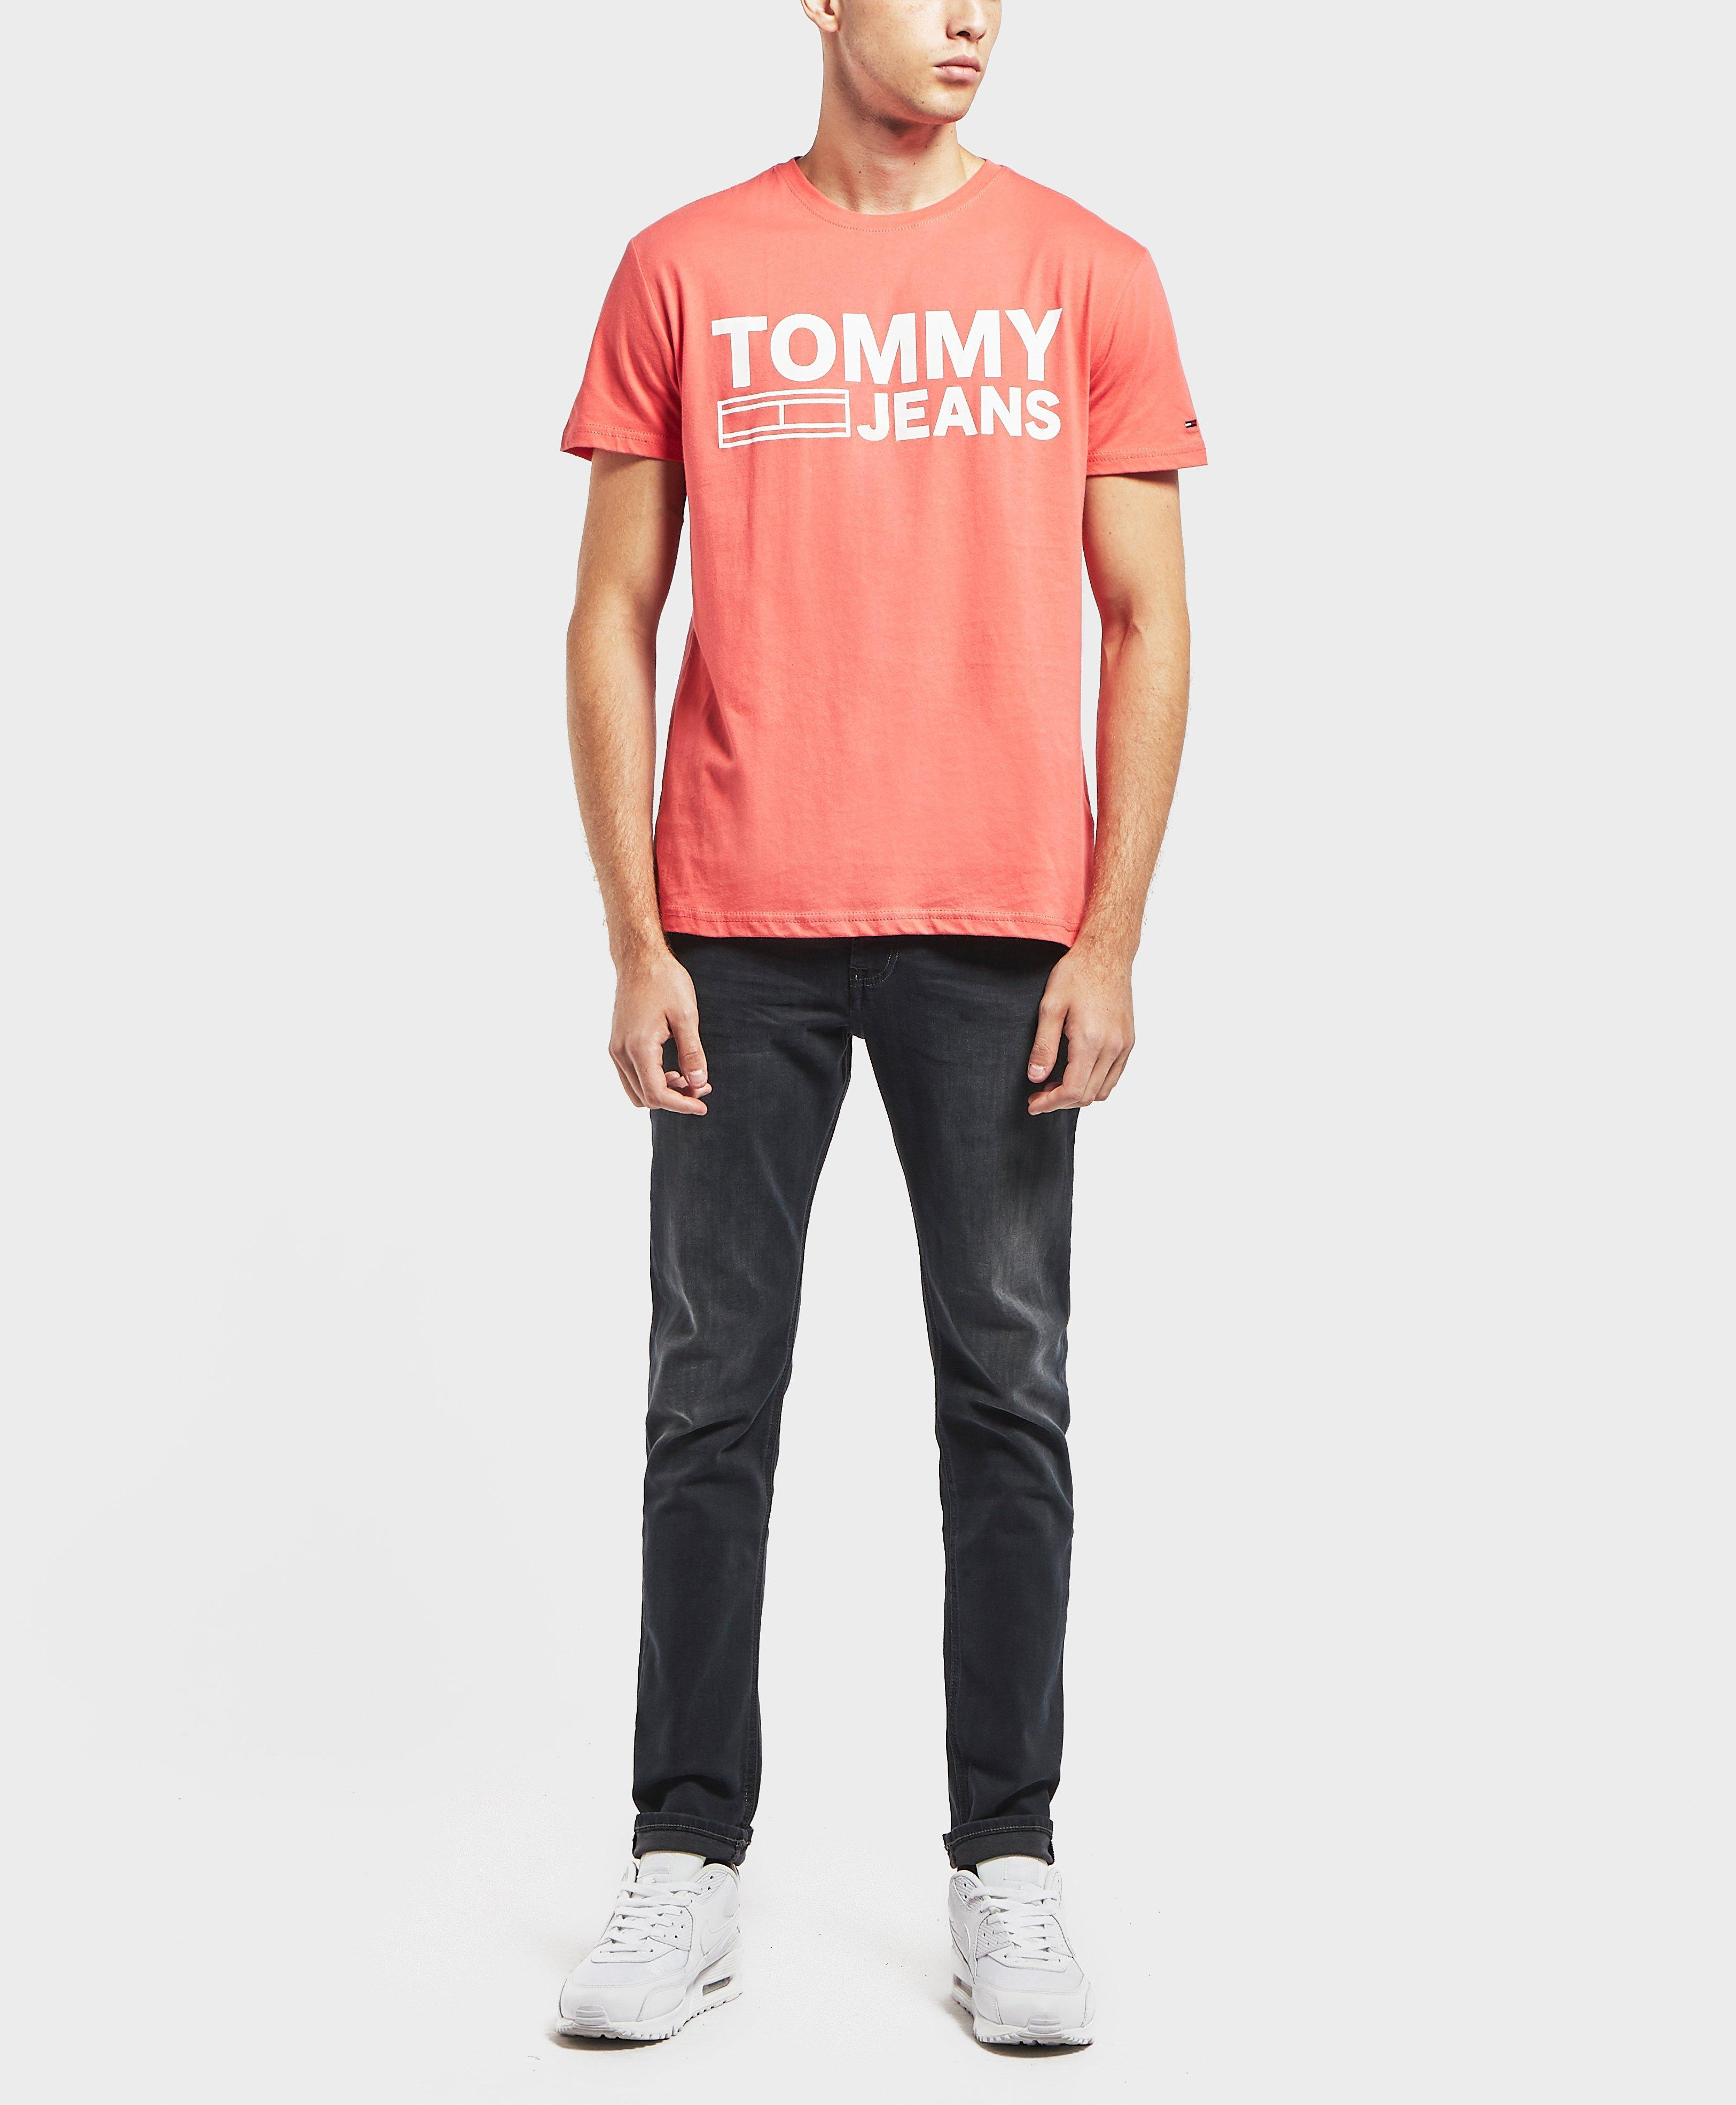 3140335a9 Tommy Hilfiger Simon Stretch Skinny Jeans for Men - Lyst